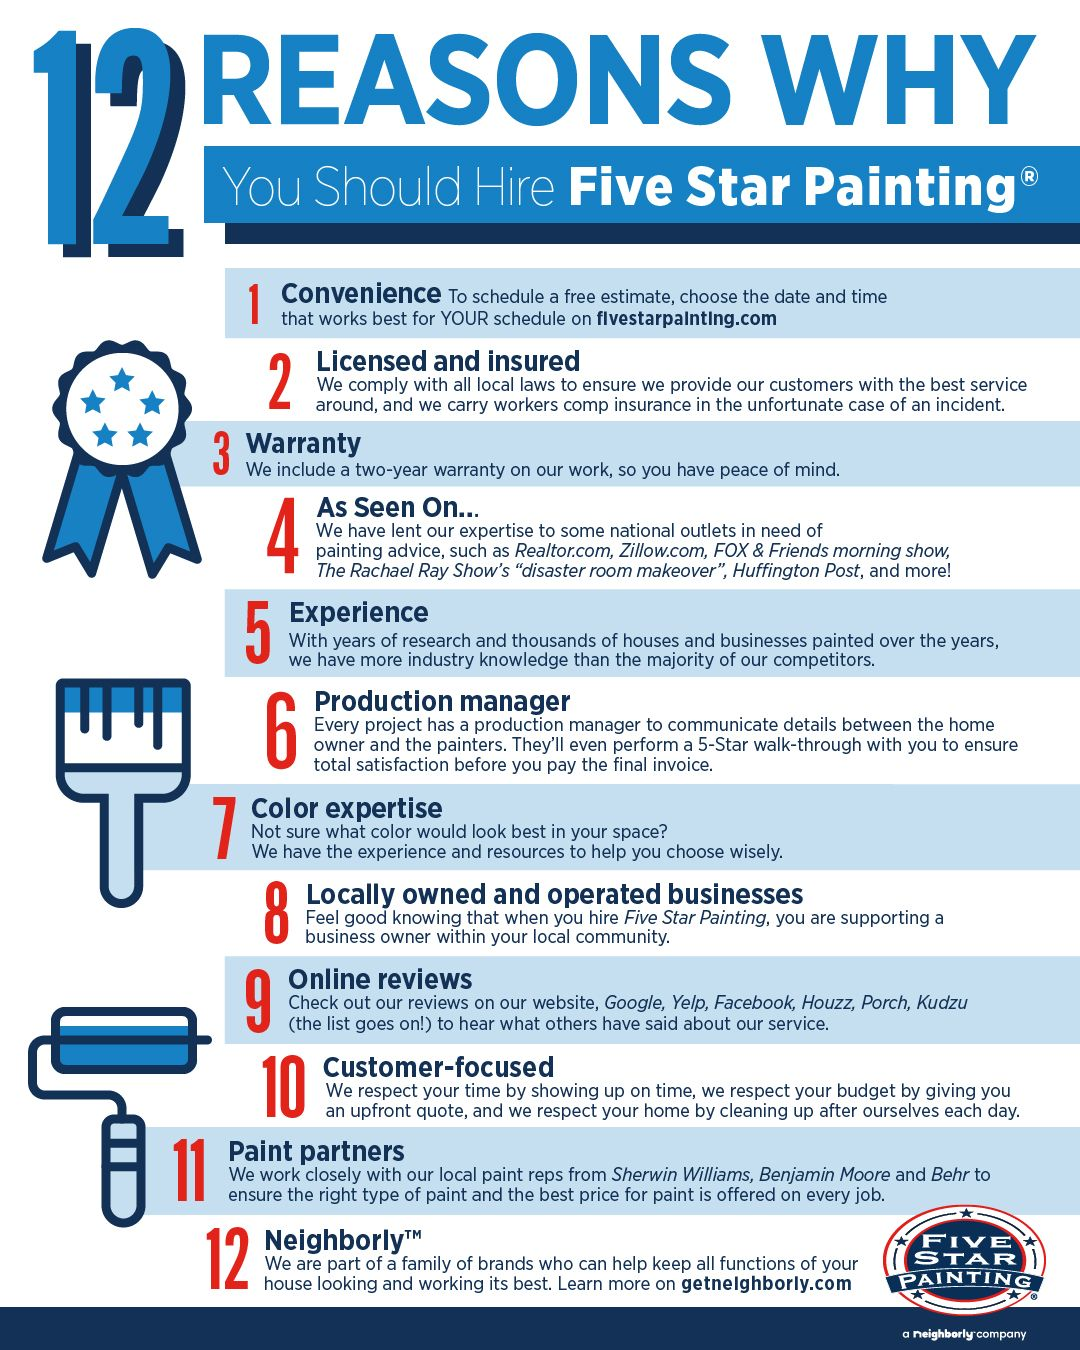 12 Reasons Why You Should Hire Five Star Painting Star Painting